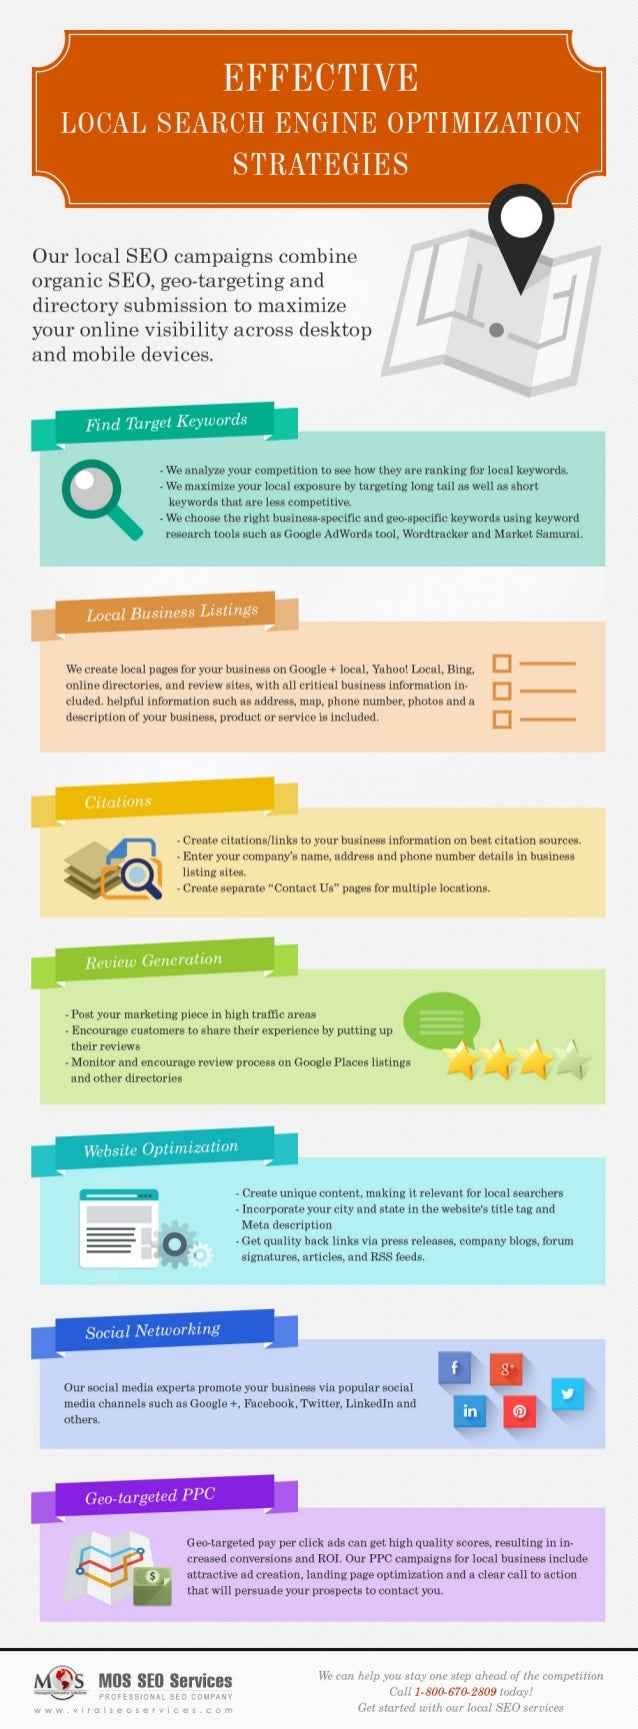 Effective Local Search Engine Optimization Strategies